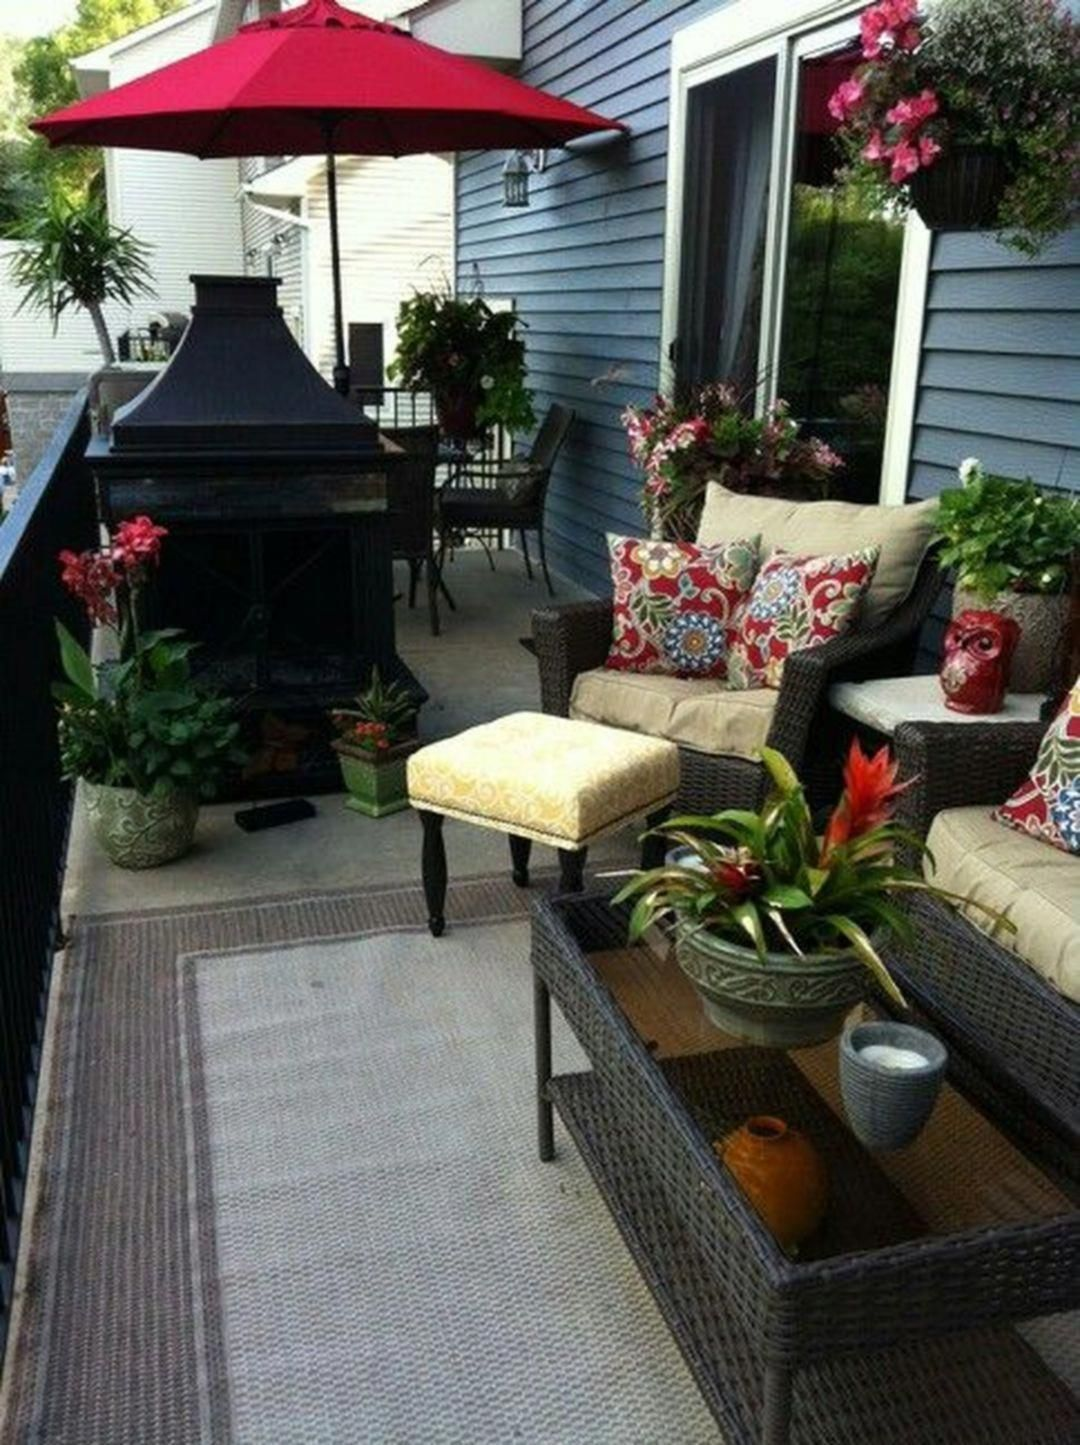 Inspiring Small Deck Decorating Ideas On A Budget For 2019